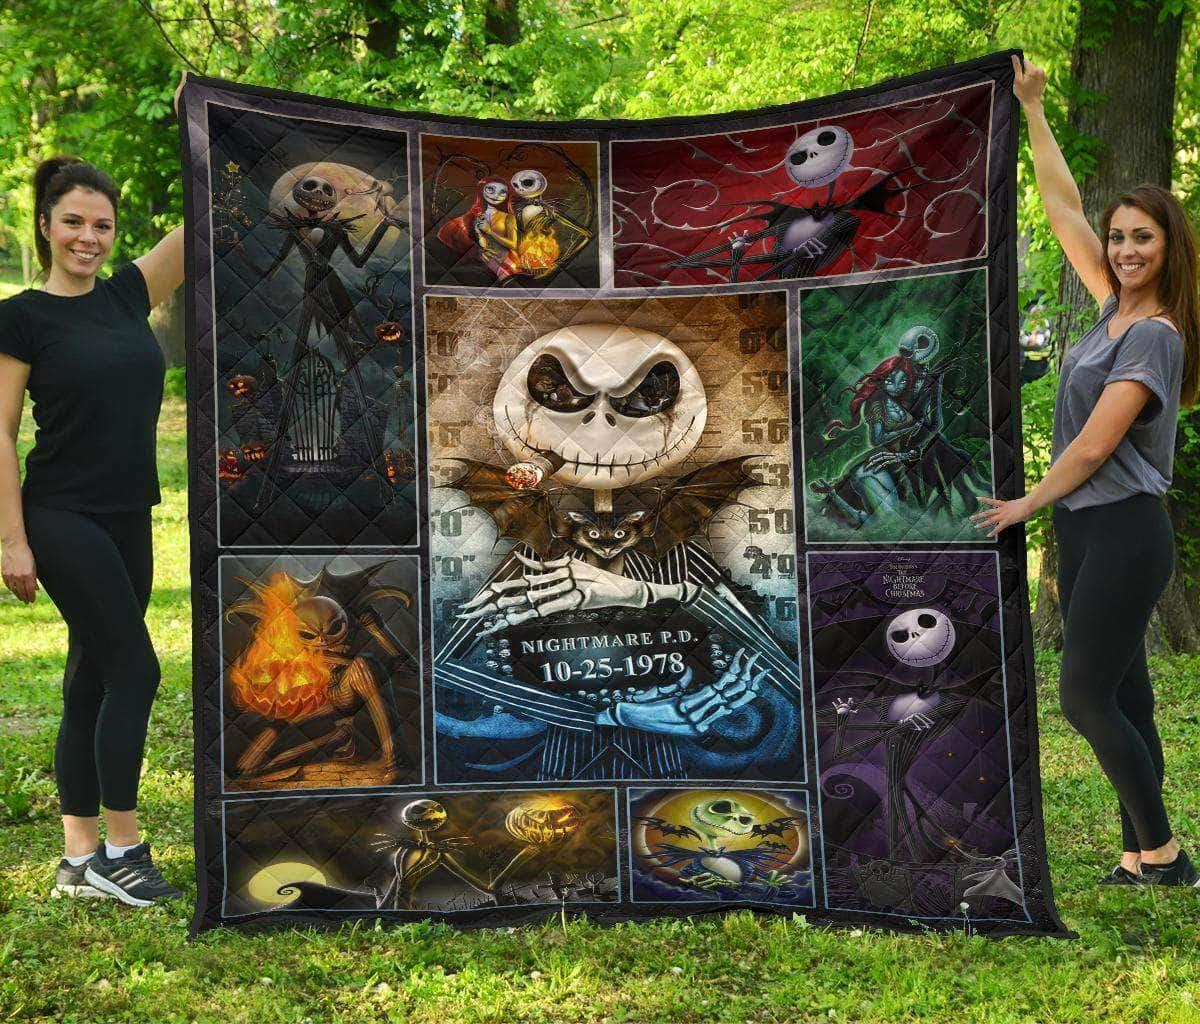 The nightmare before christmas jack skellington quilt - king